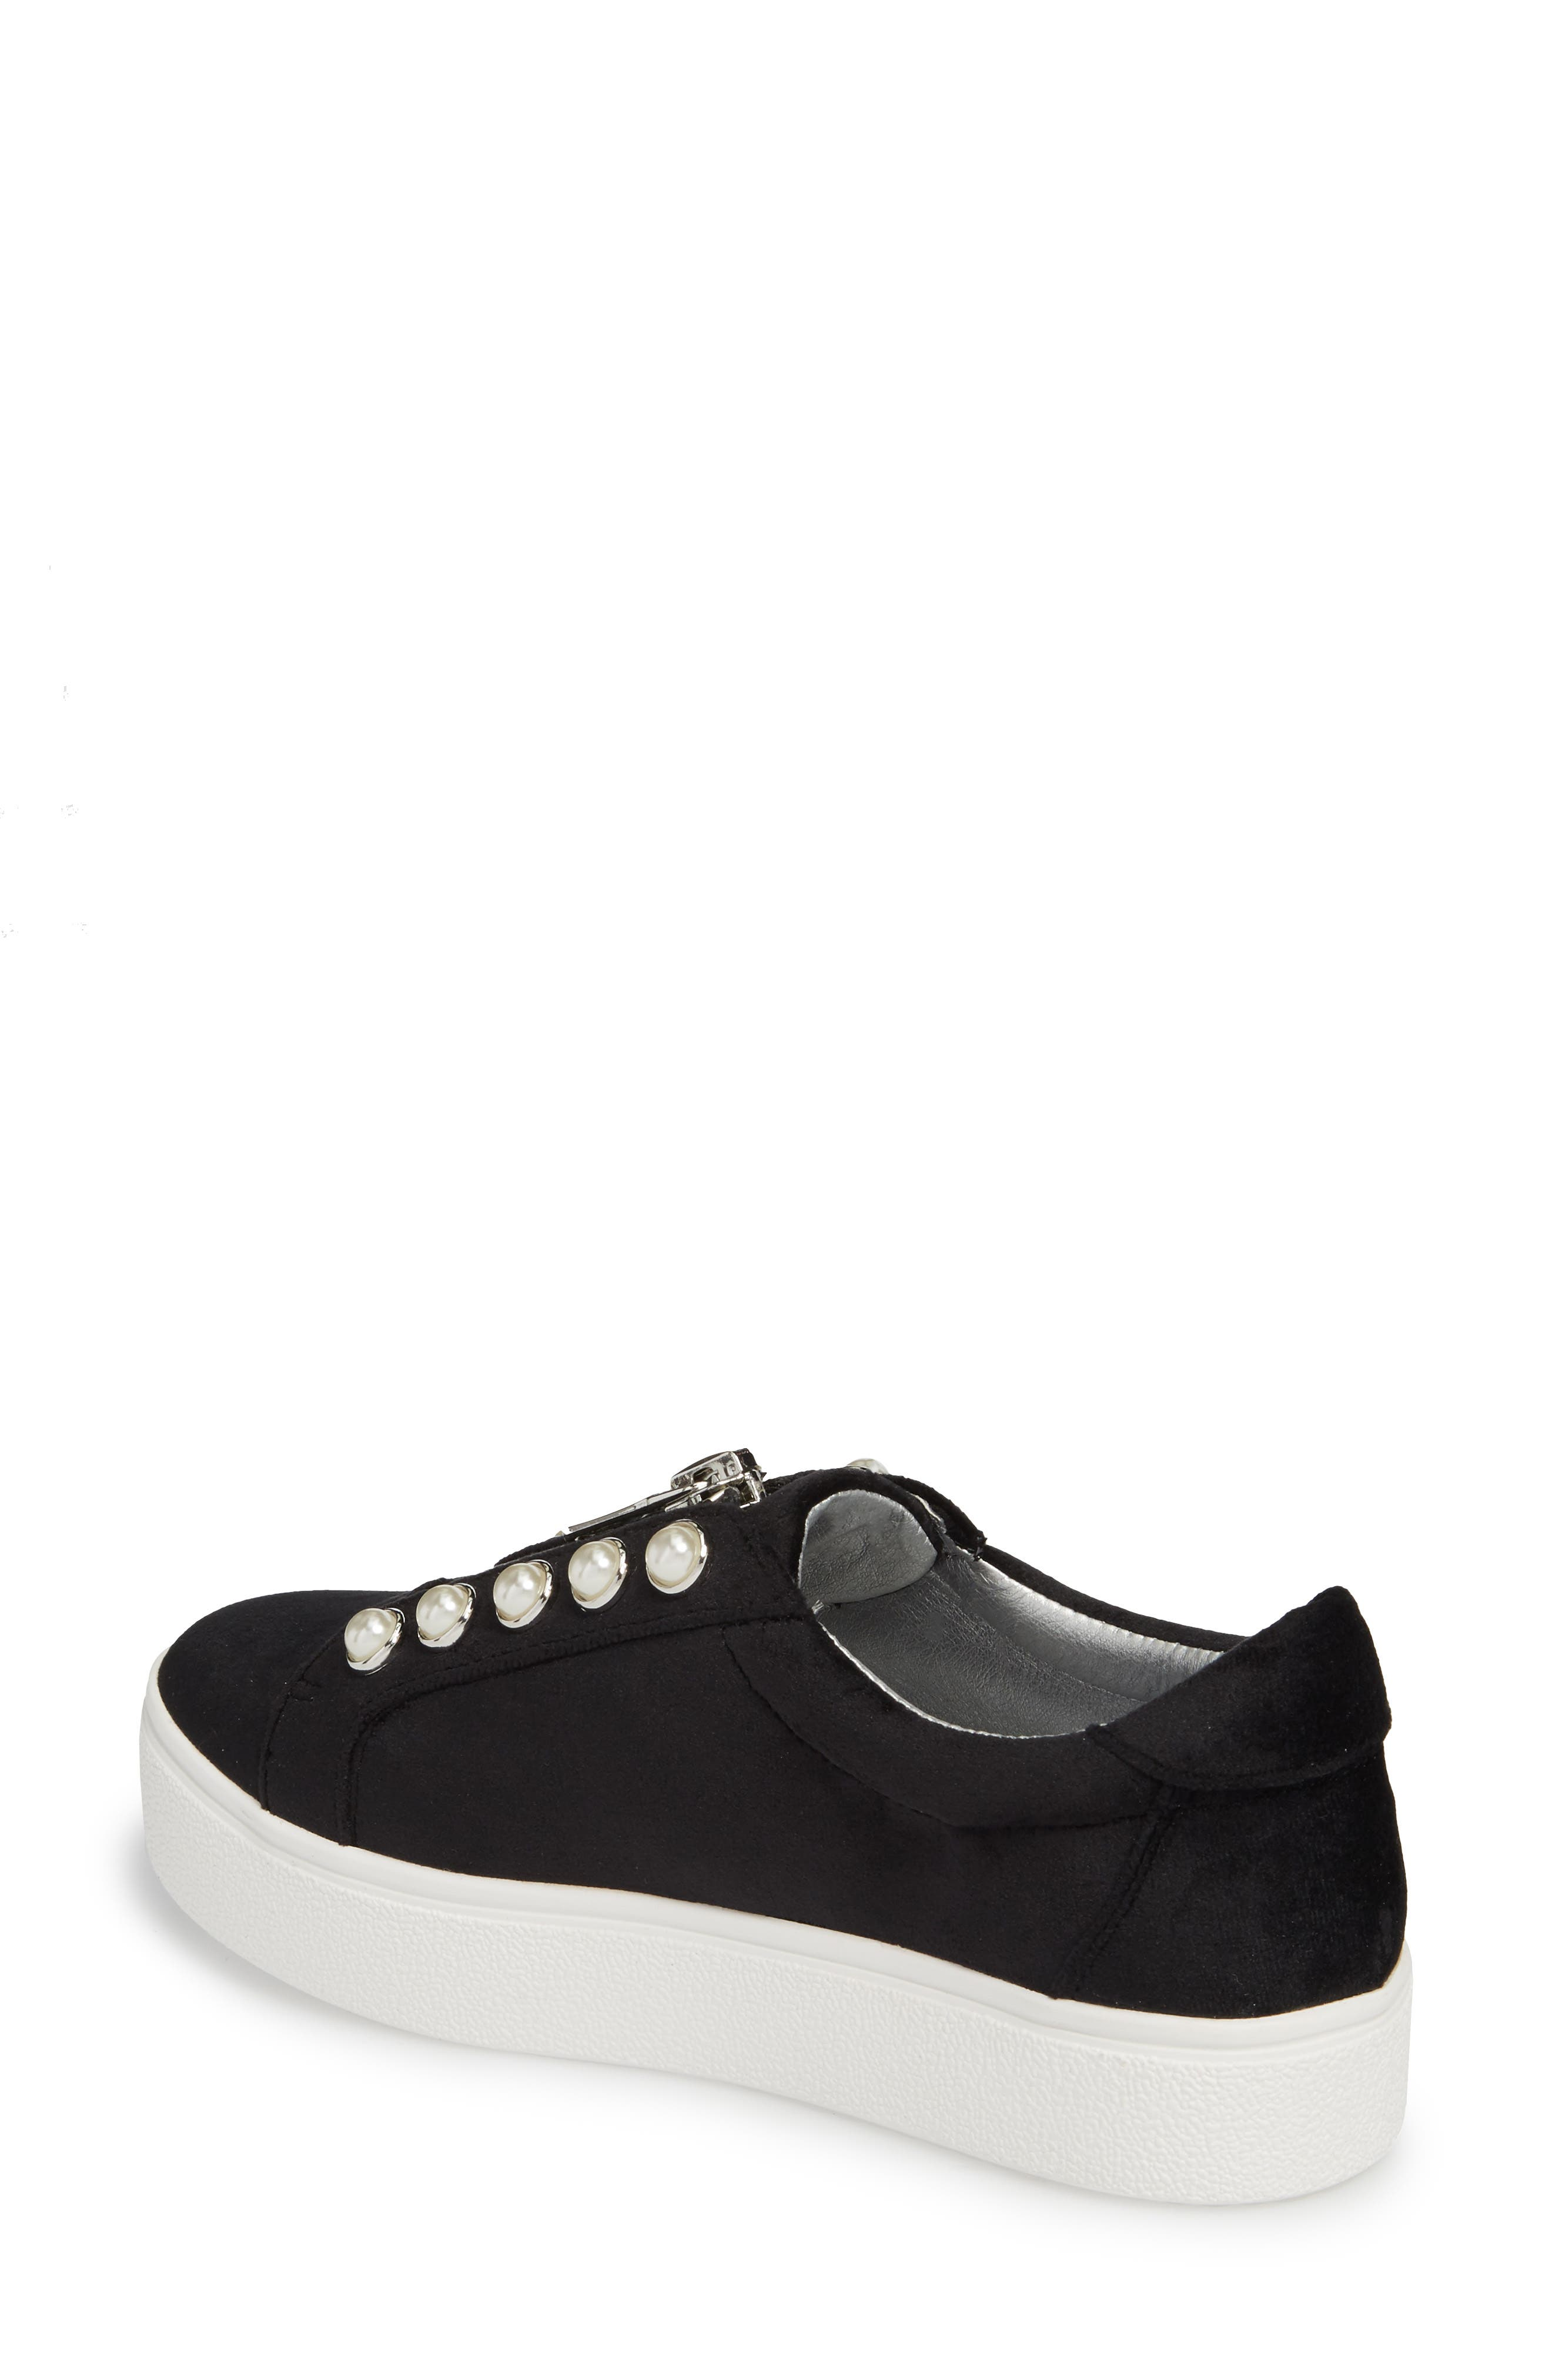 Lynn Embellished Platform Sneaker,                             Alternate thumbnail 2, color,                             Black Velvet